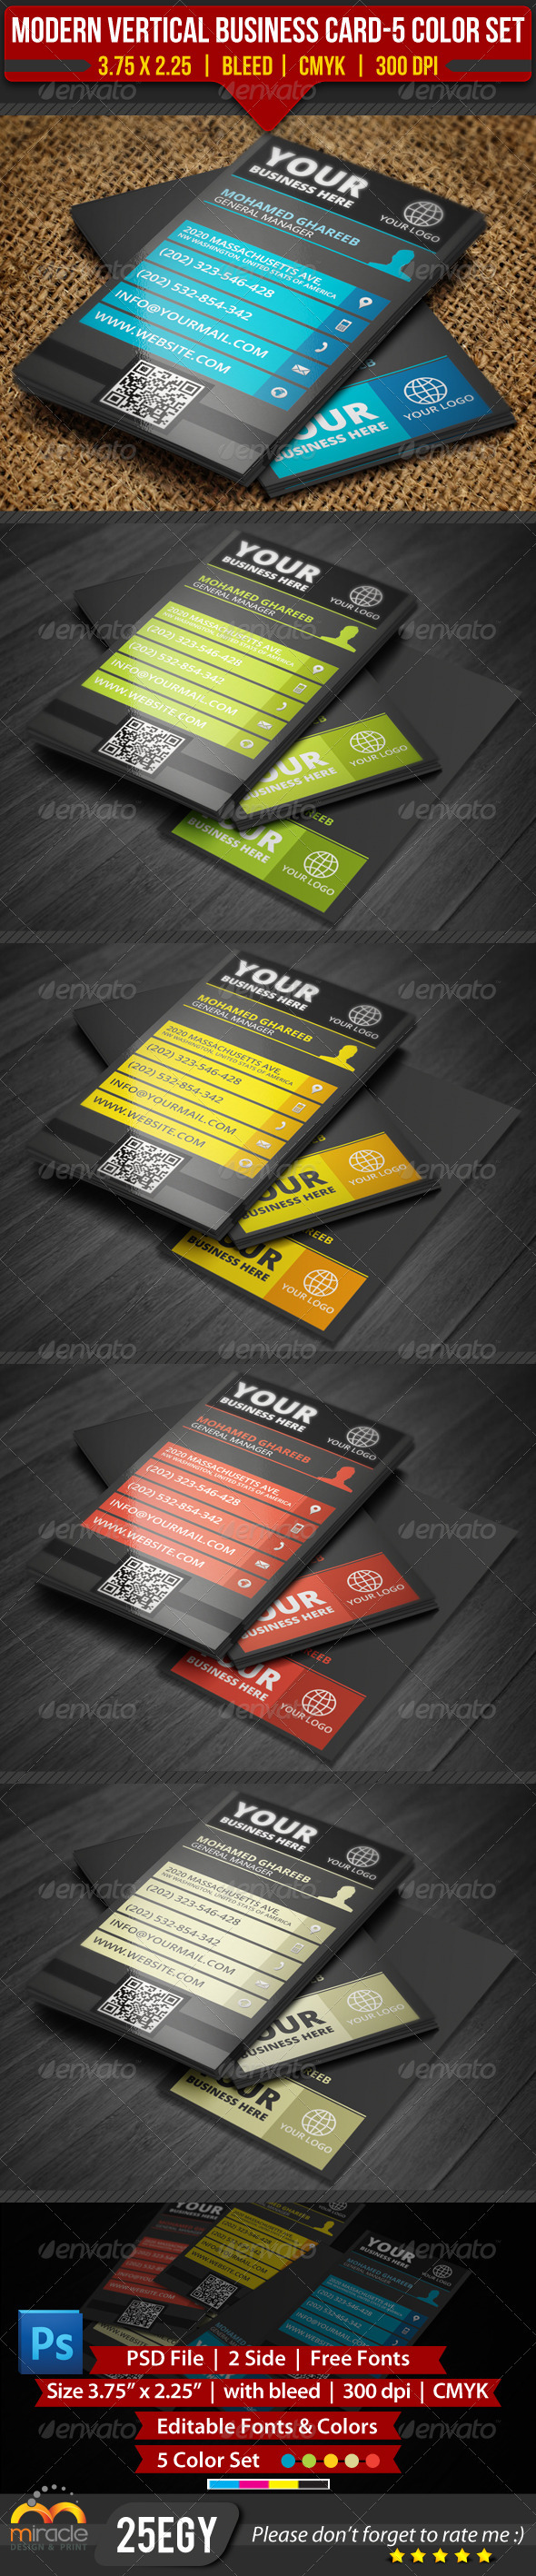 GraphicRiver Modern Vertical Business Card-5 Color Set 3402372